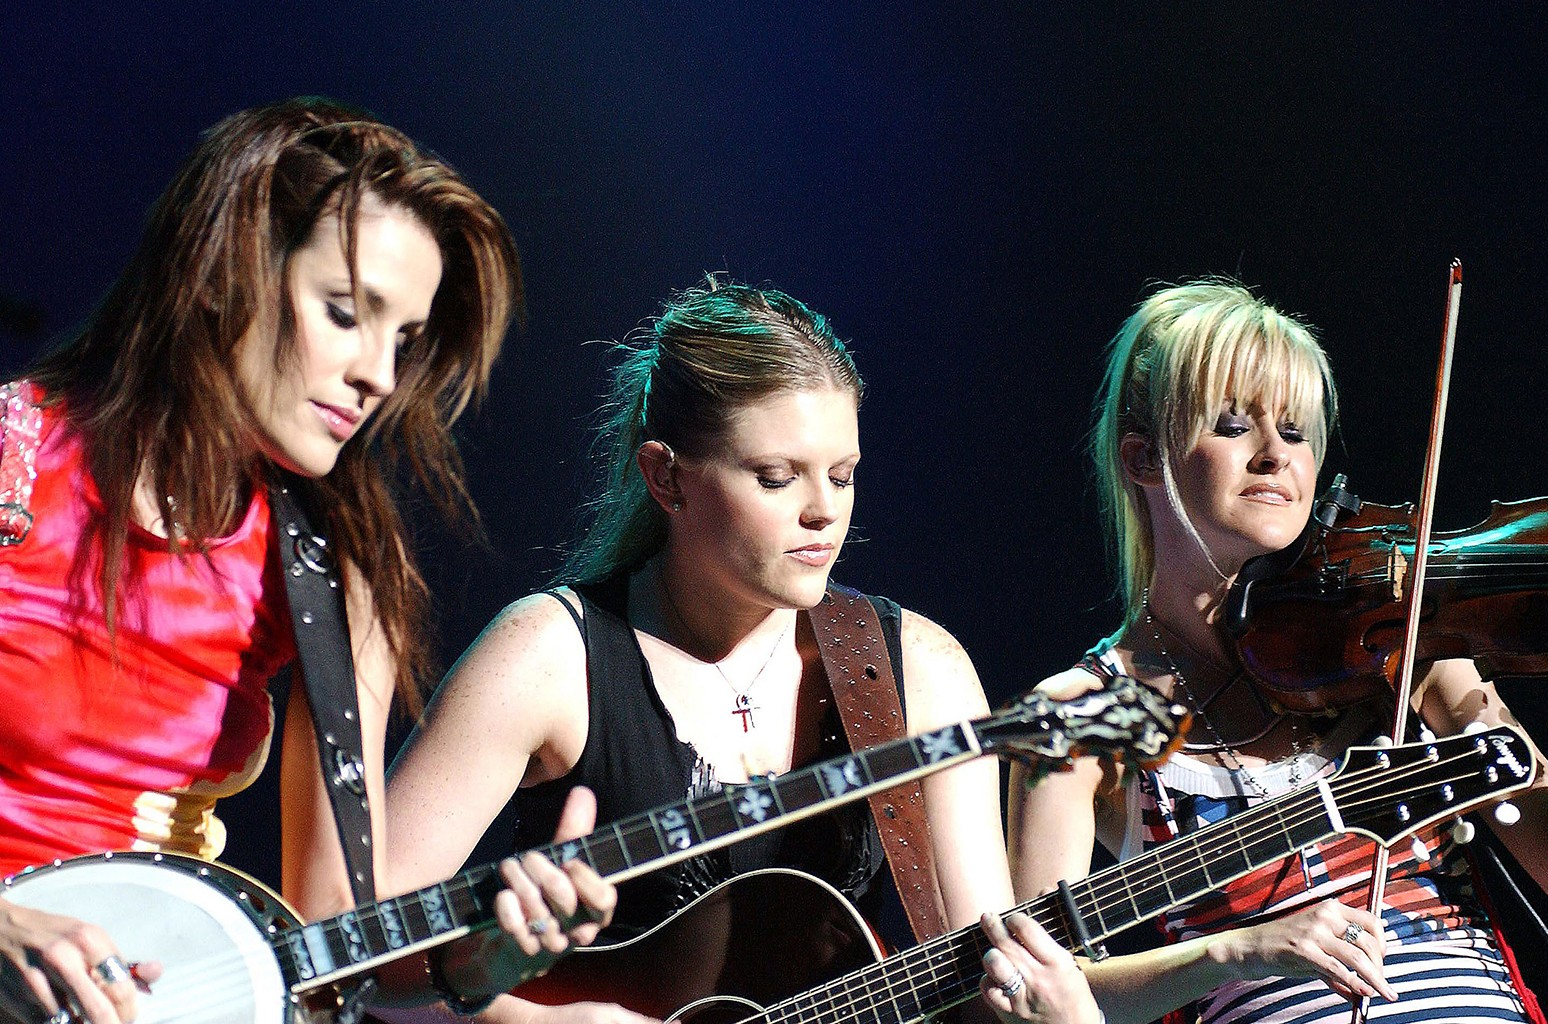 The Dixie Chicks perform live on stage at The Point Theatre Sept. 18, 2003 in Dublin, Ireland.